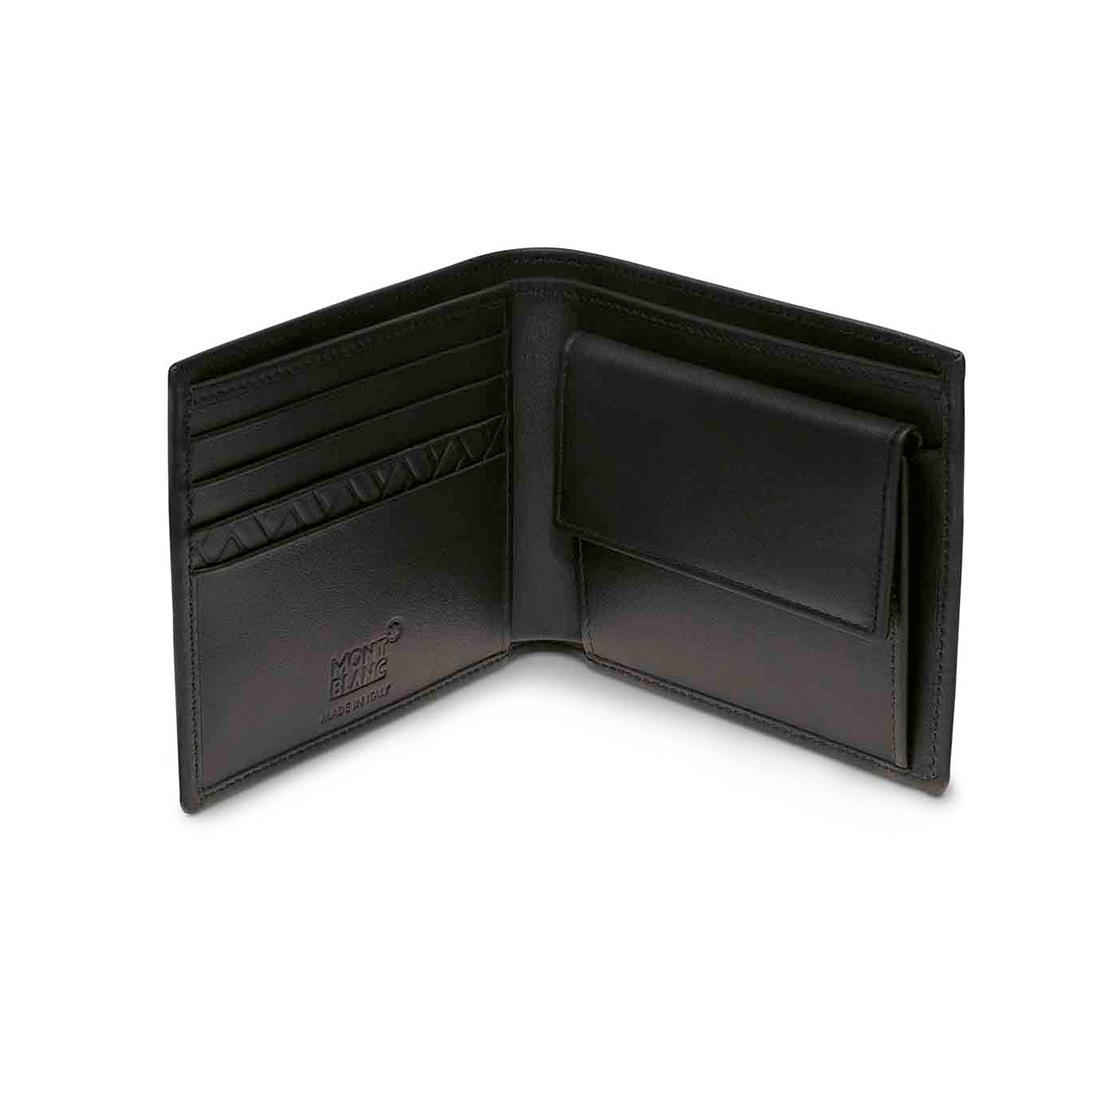 MONTBLANC FOR BMW WALLET WITH COIN COMPARTMENT